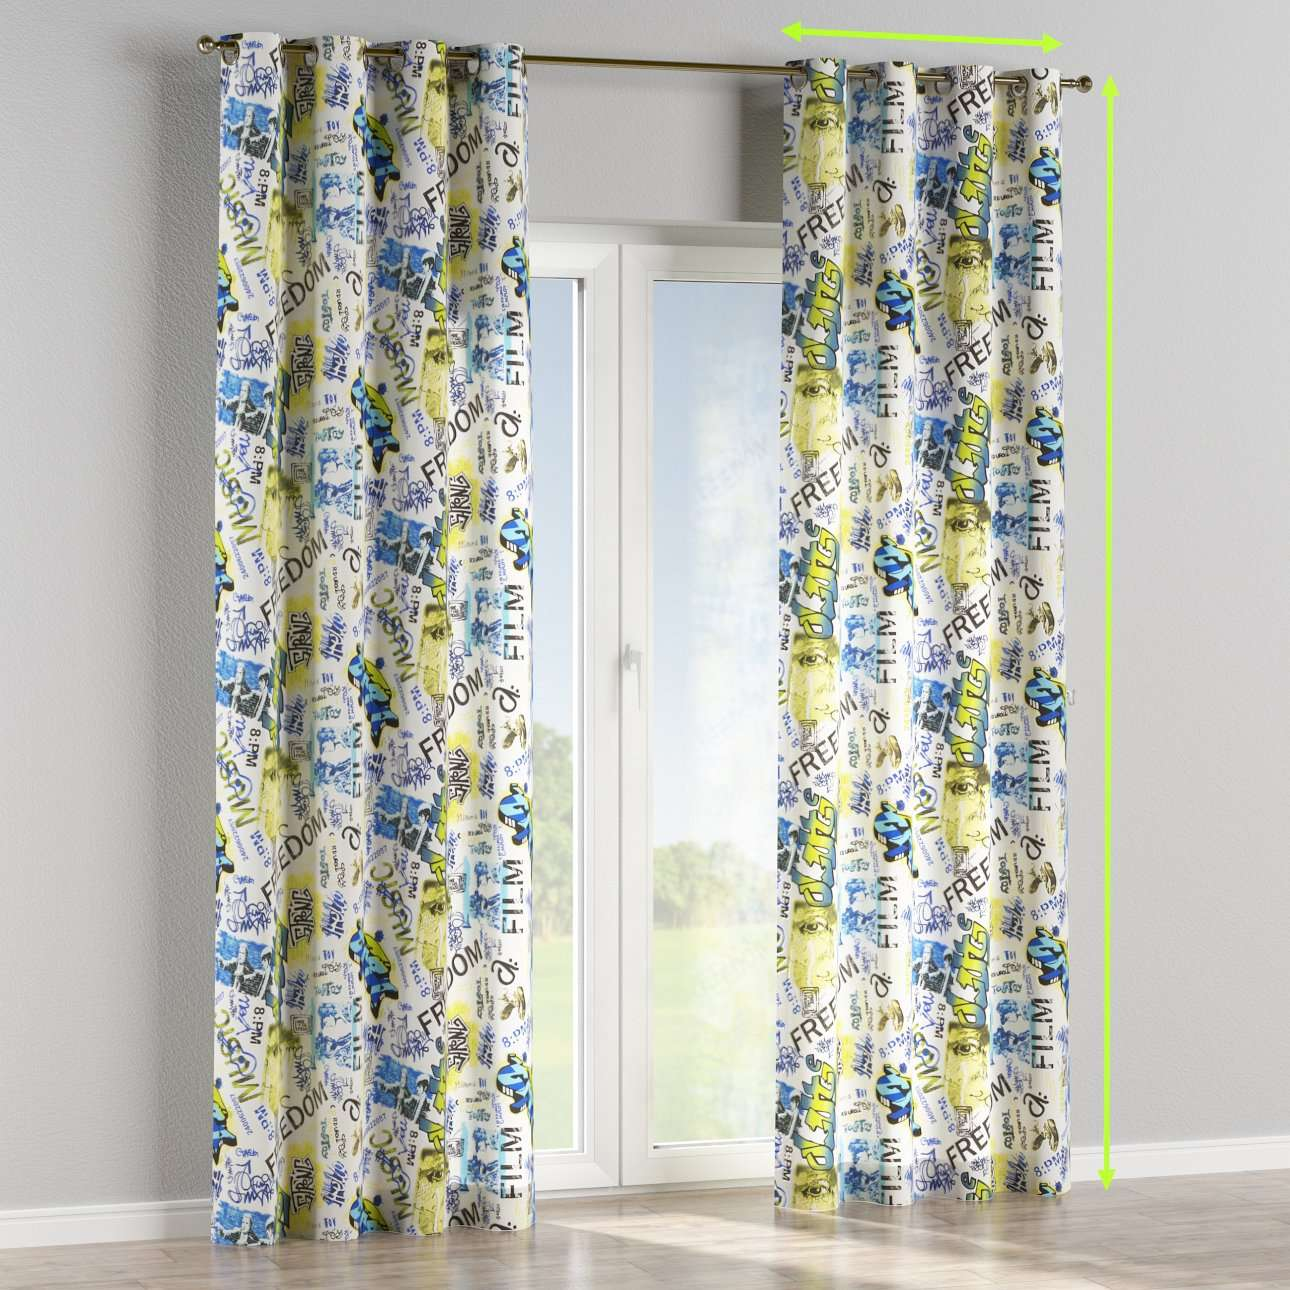 Eyelet lined curtains in collection Comic Book & Geo Prints, fabric: 135-08